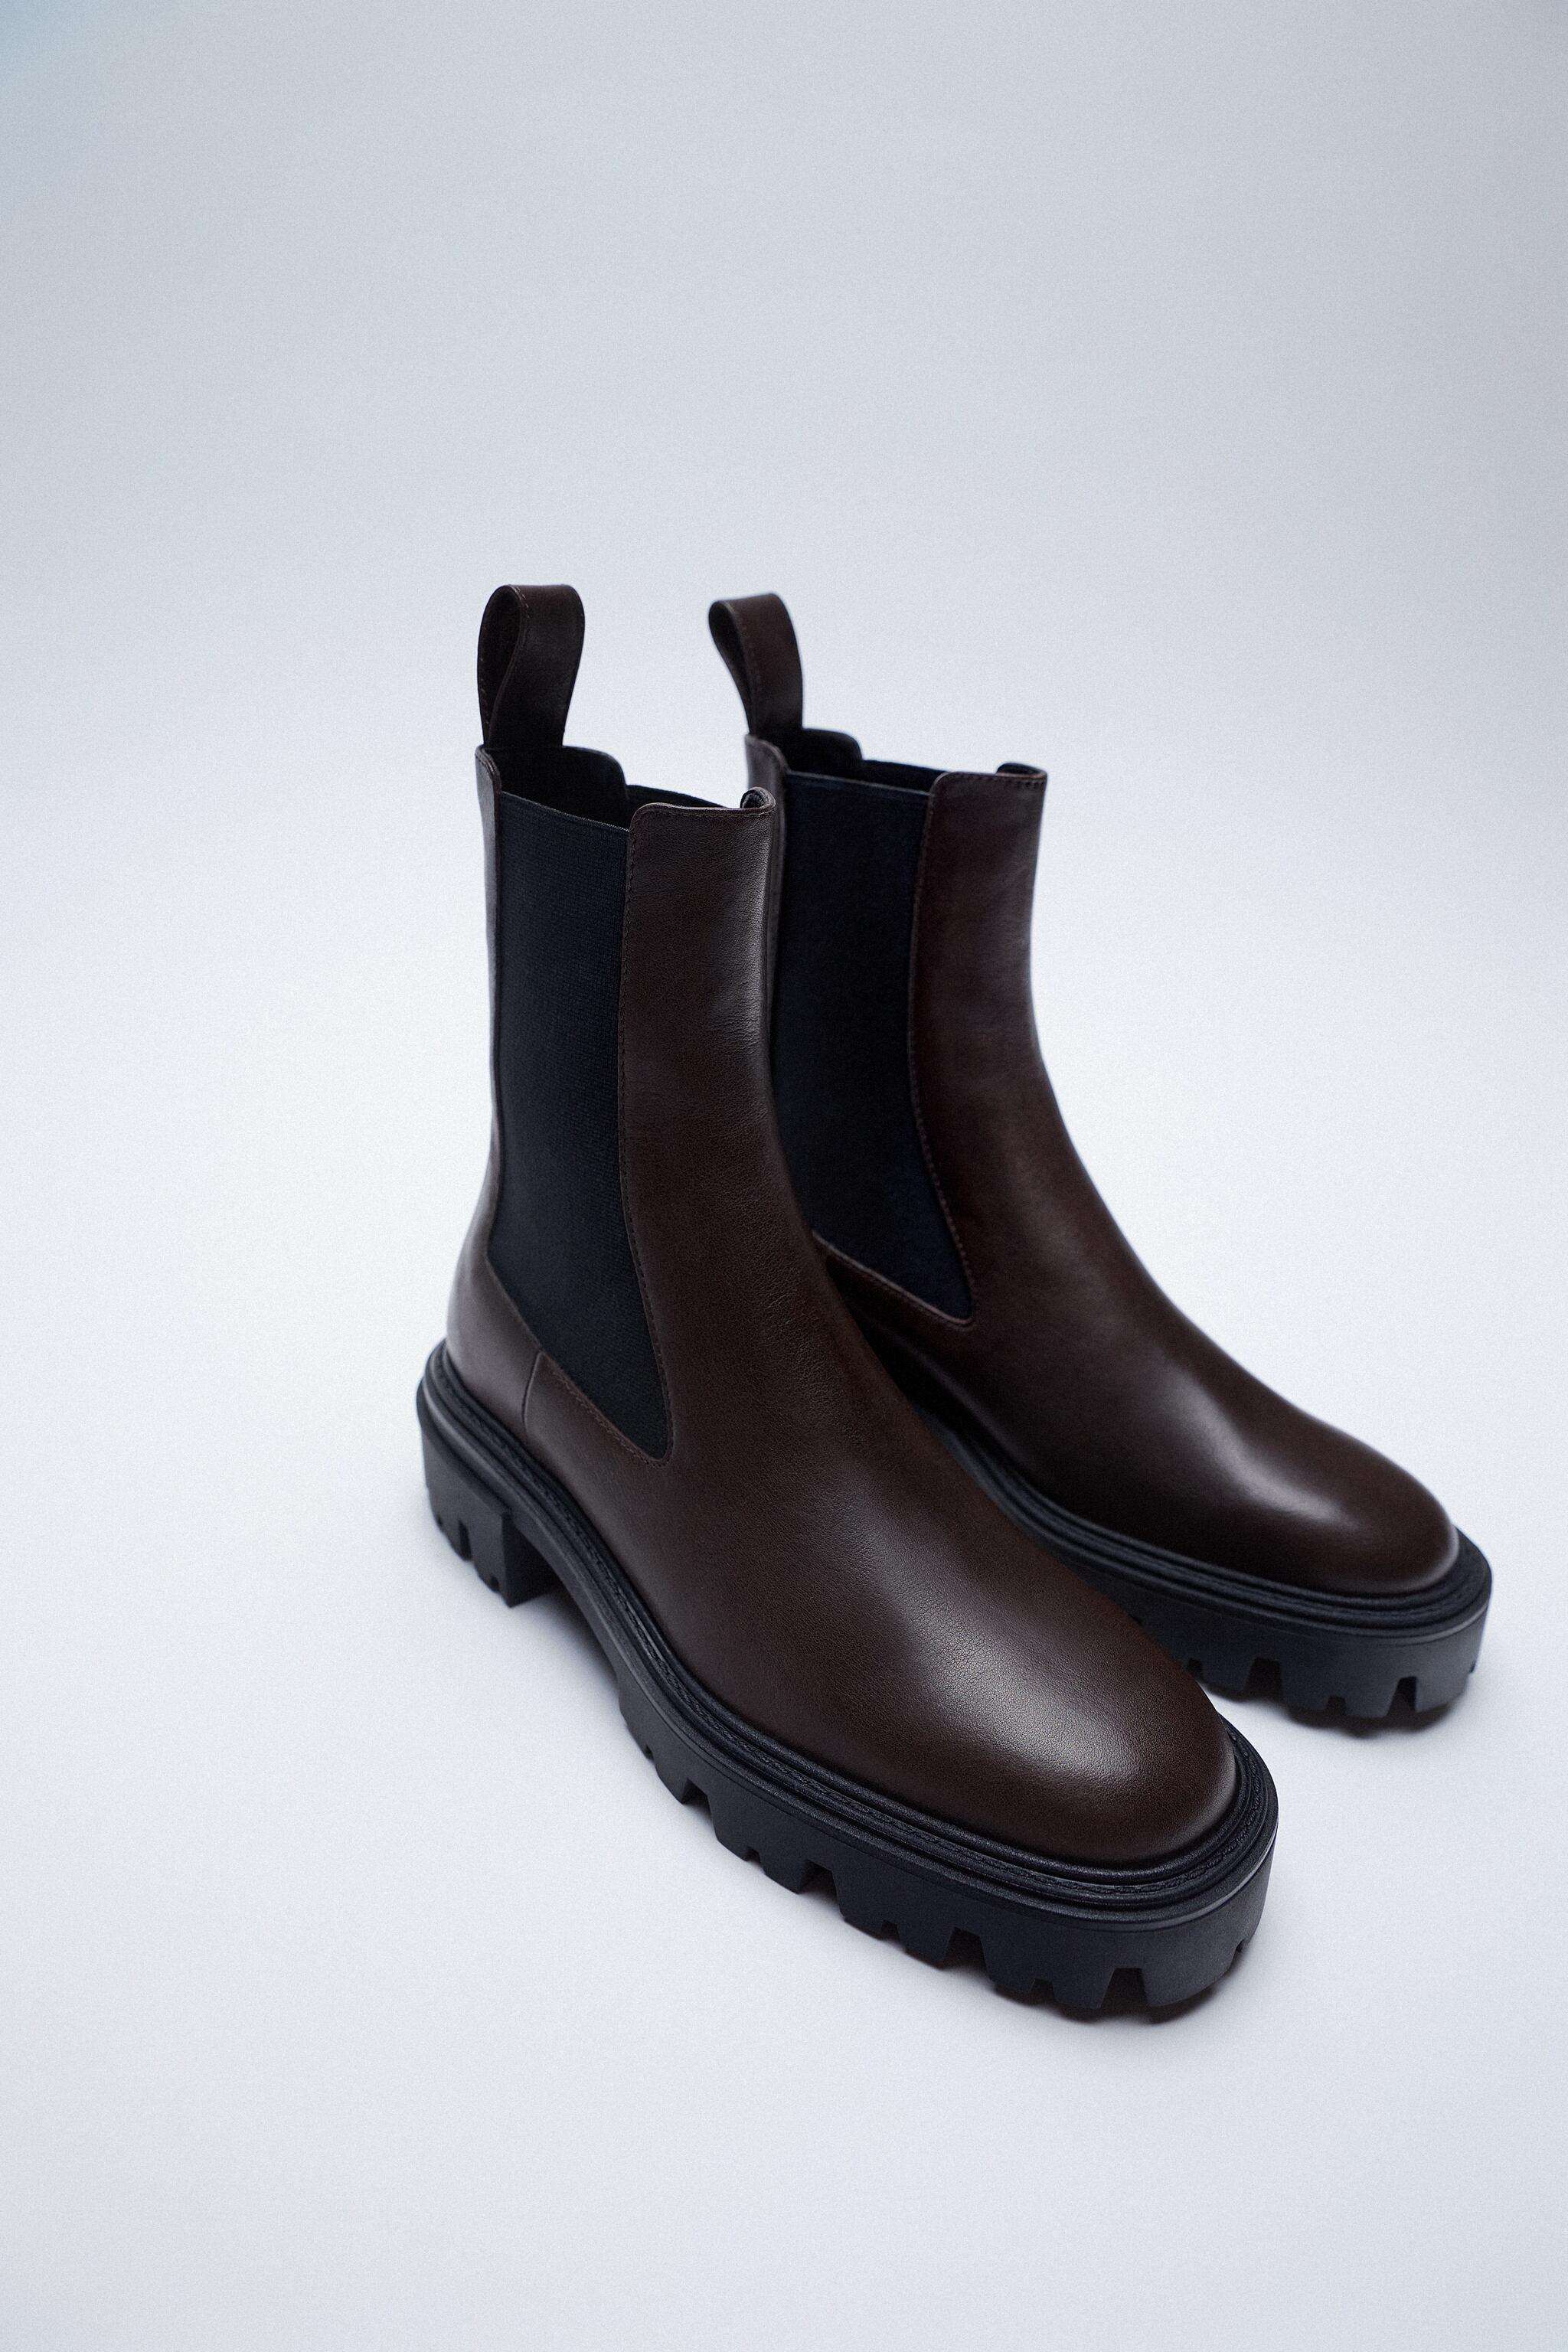 LOW HEEL LEATHER ANKLE BOOTS WITH ELASTIC GORING 1